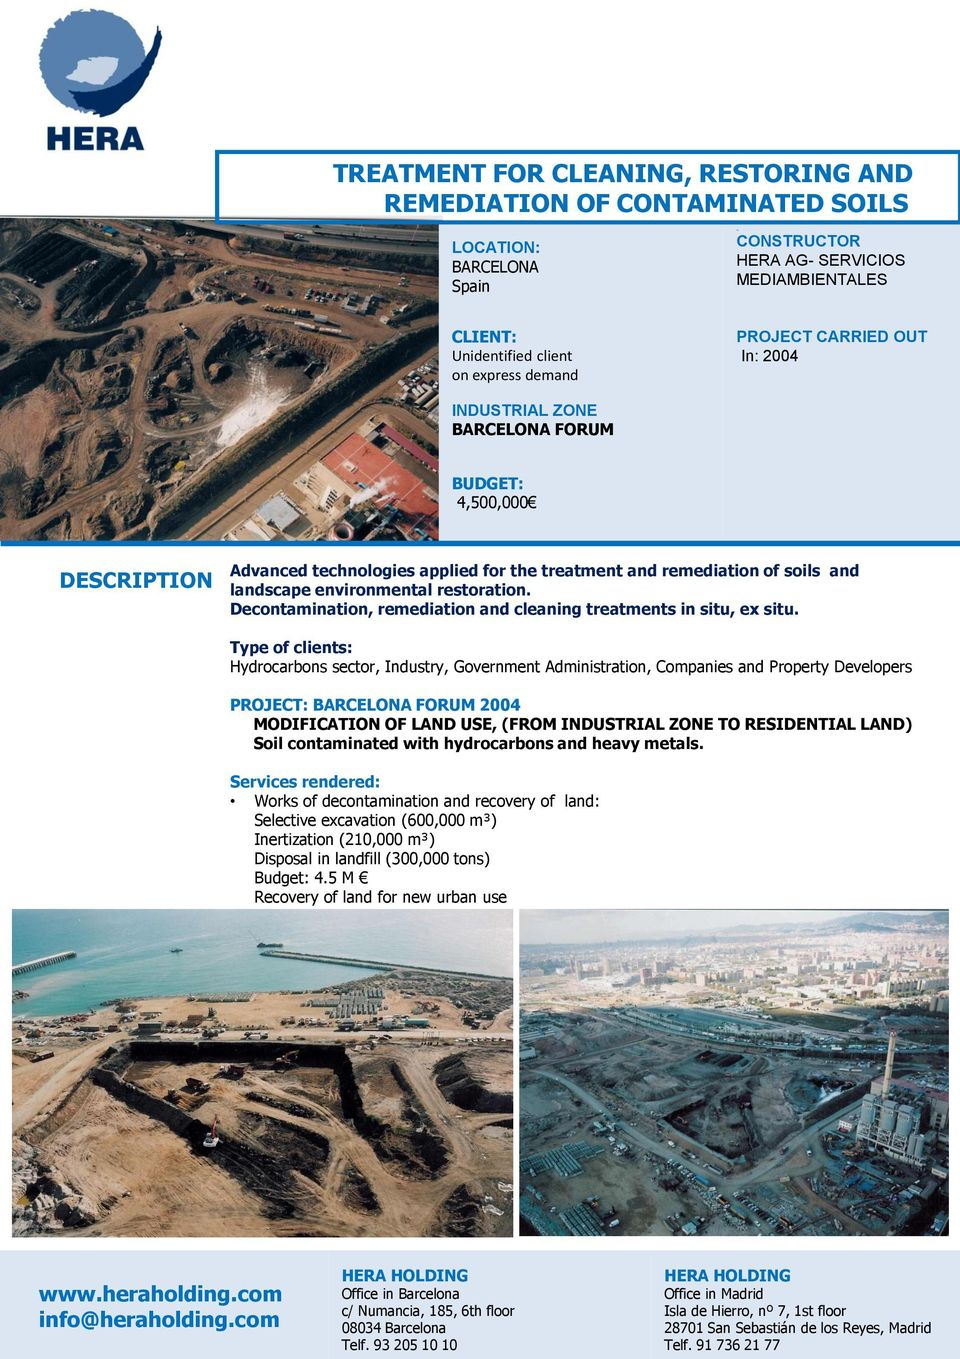 LAND) Soil contaminated with hydrocarbons and heavy metals.